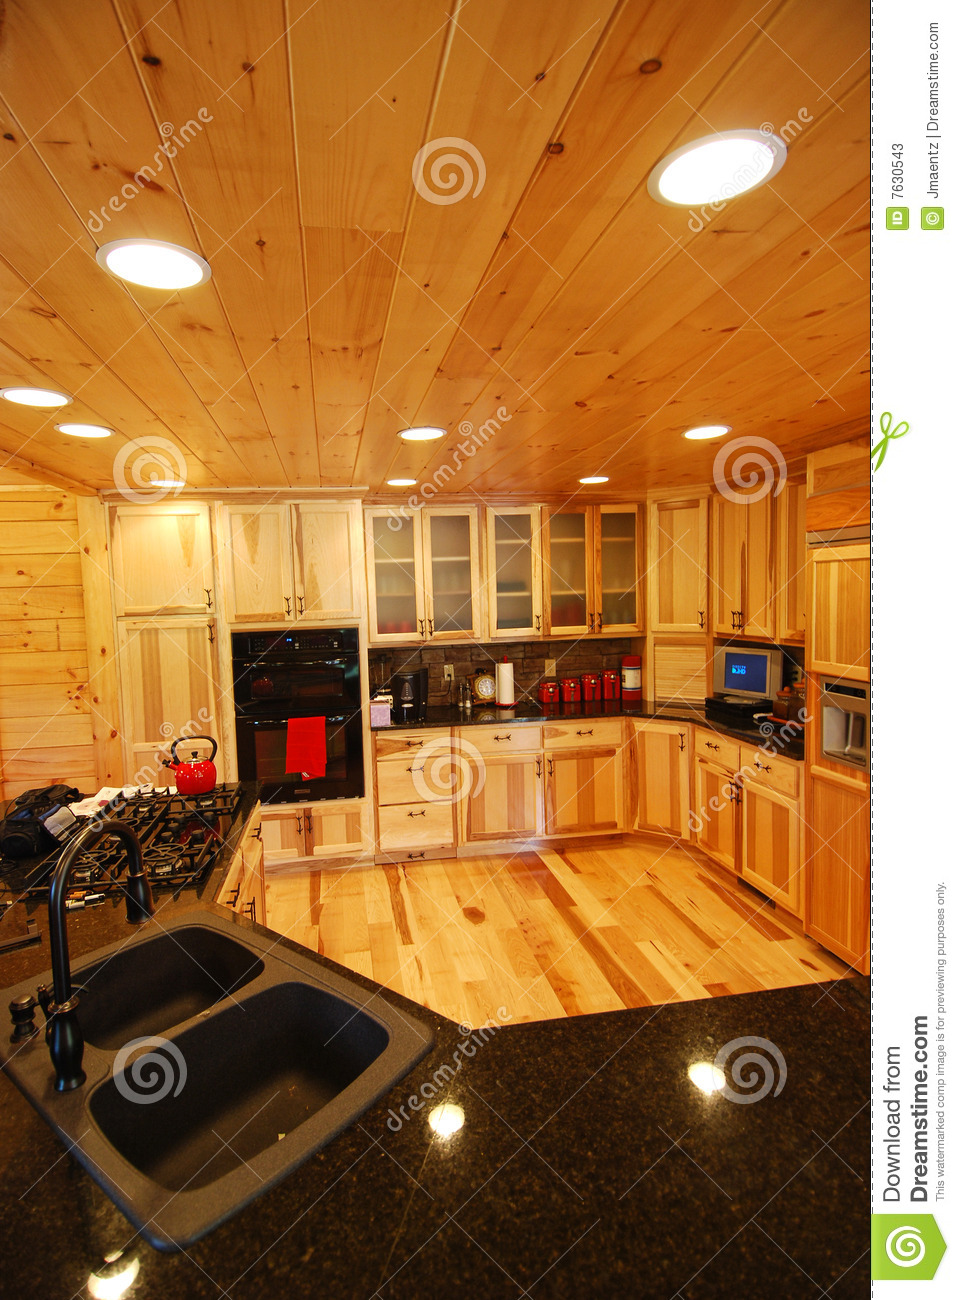 Log house kitchen interior